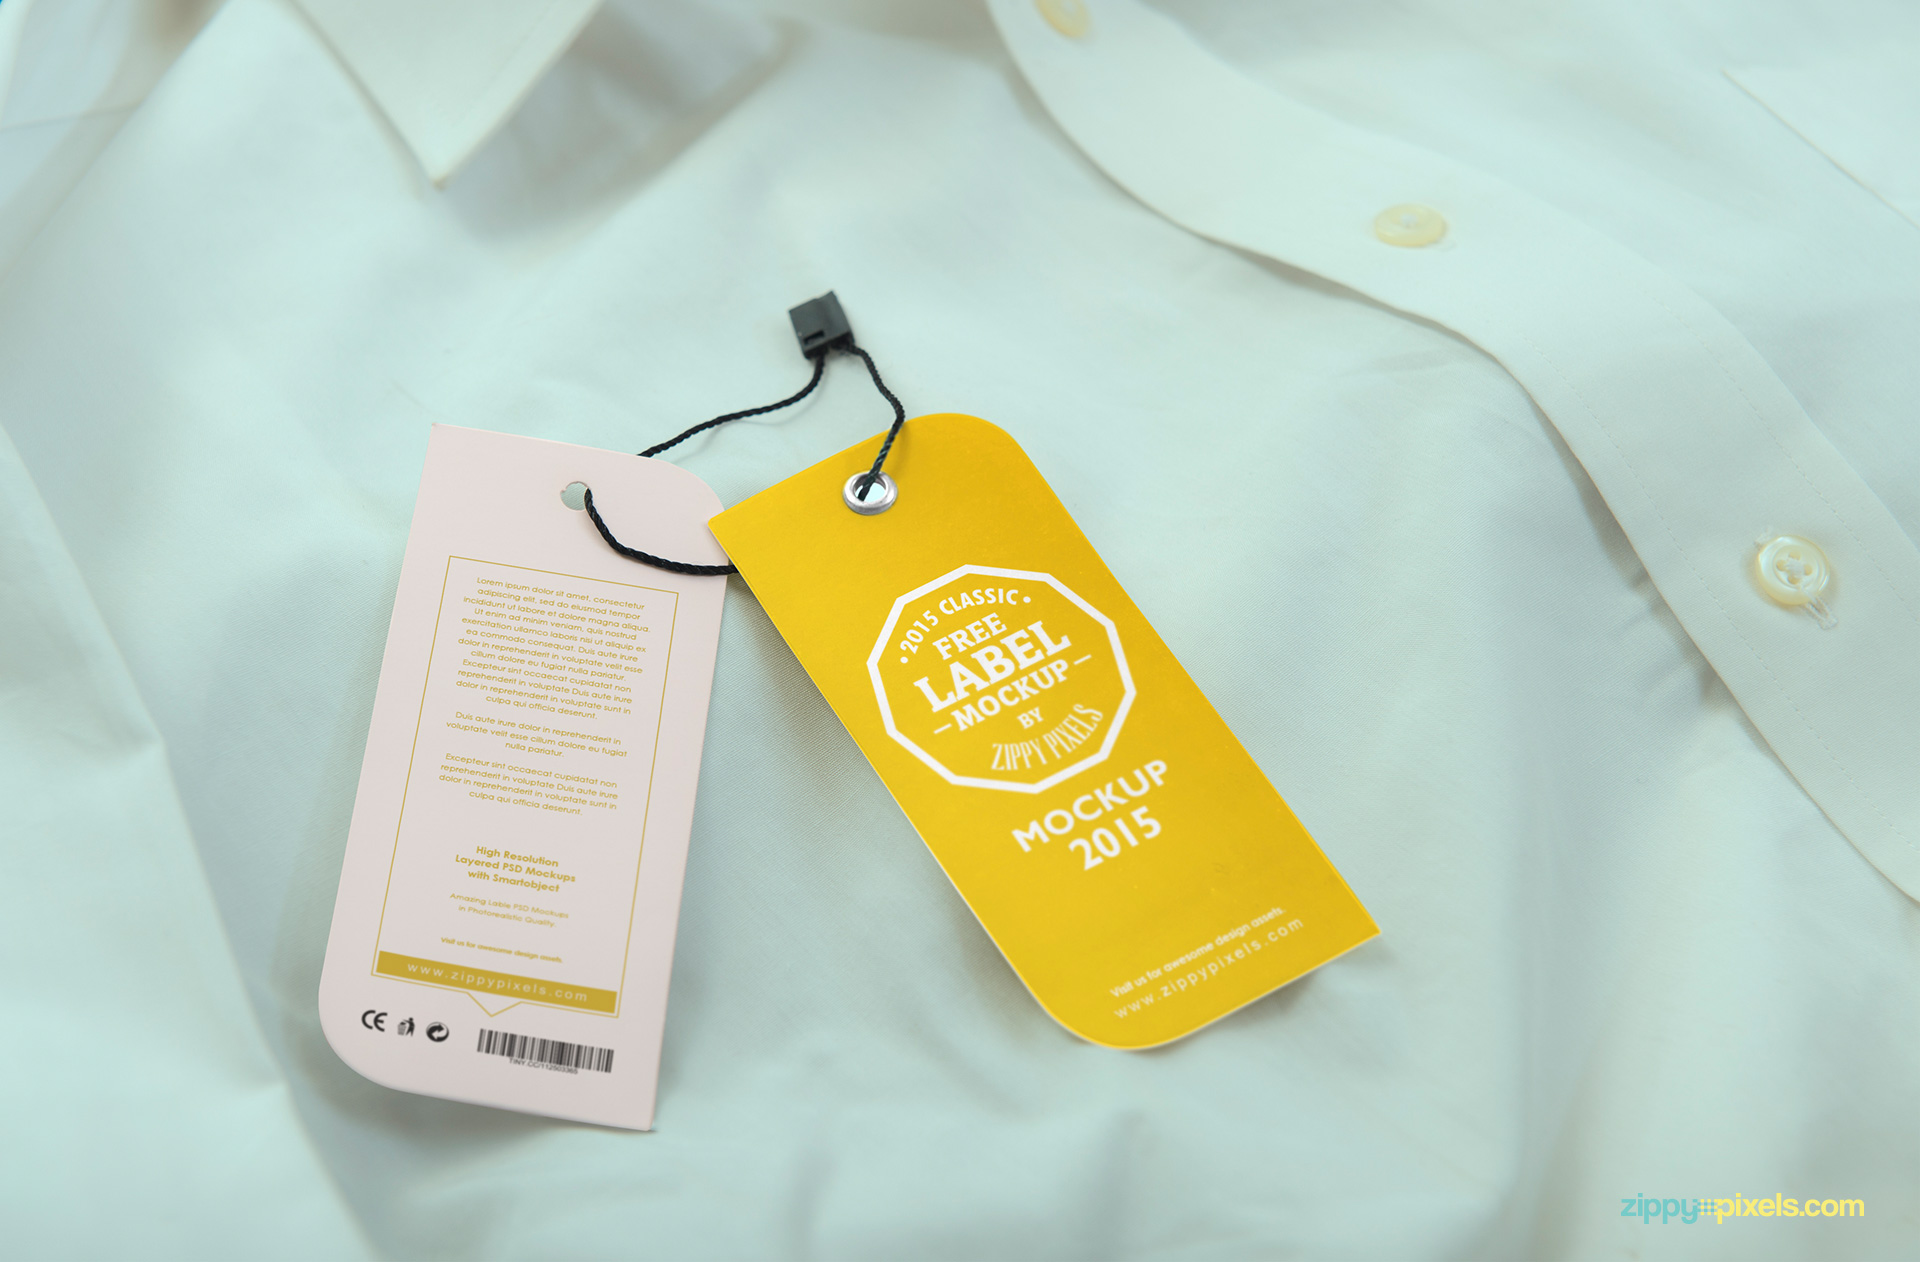 Clothing tags with front and back preview placed on the shirt.